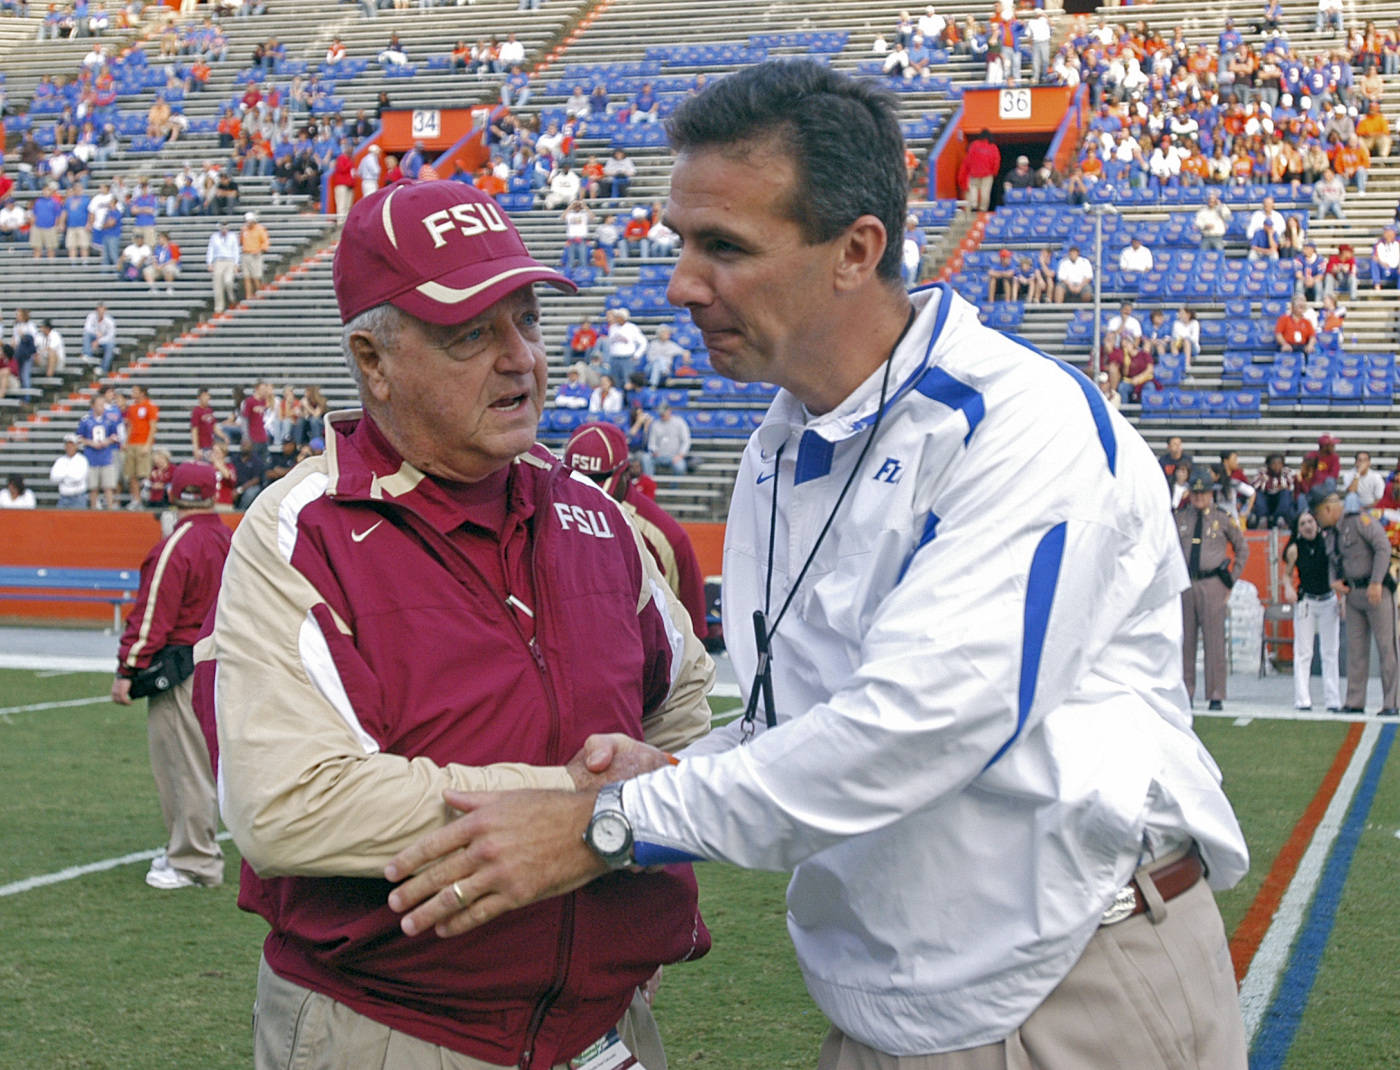 Florida State coach Bobby Bowden, left, and Florida coach Urban Meyer shake hands during warmups.